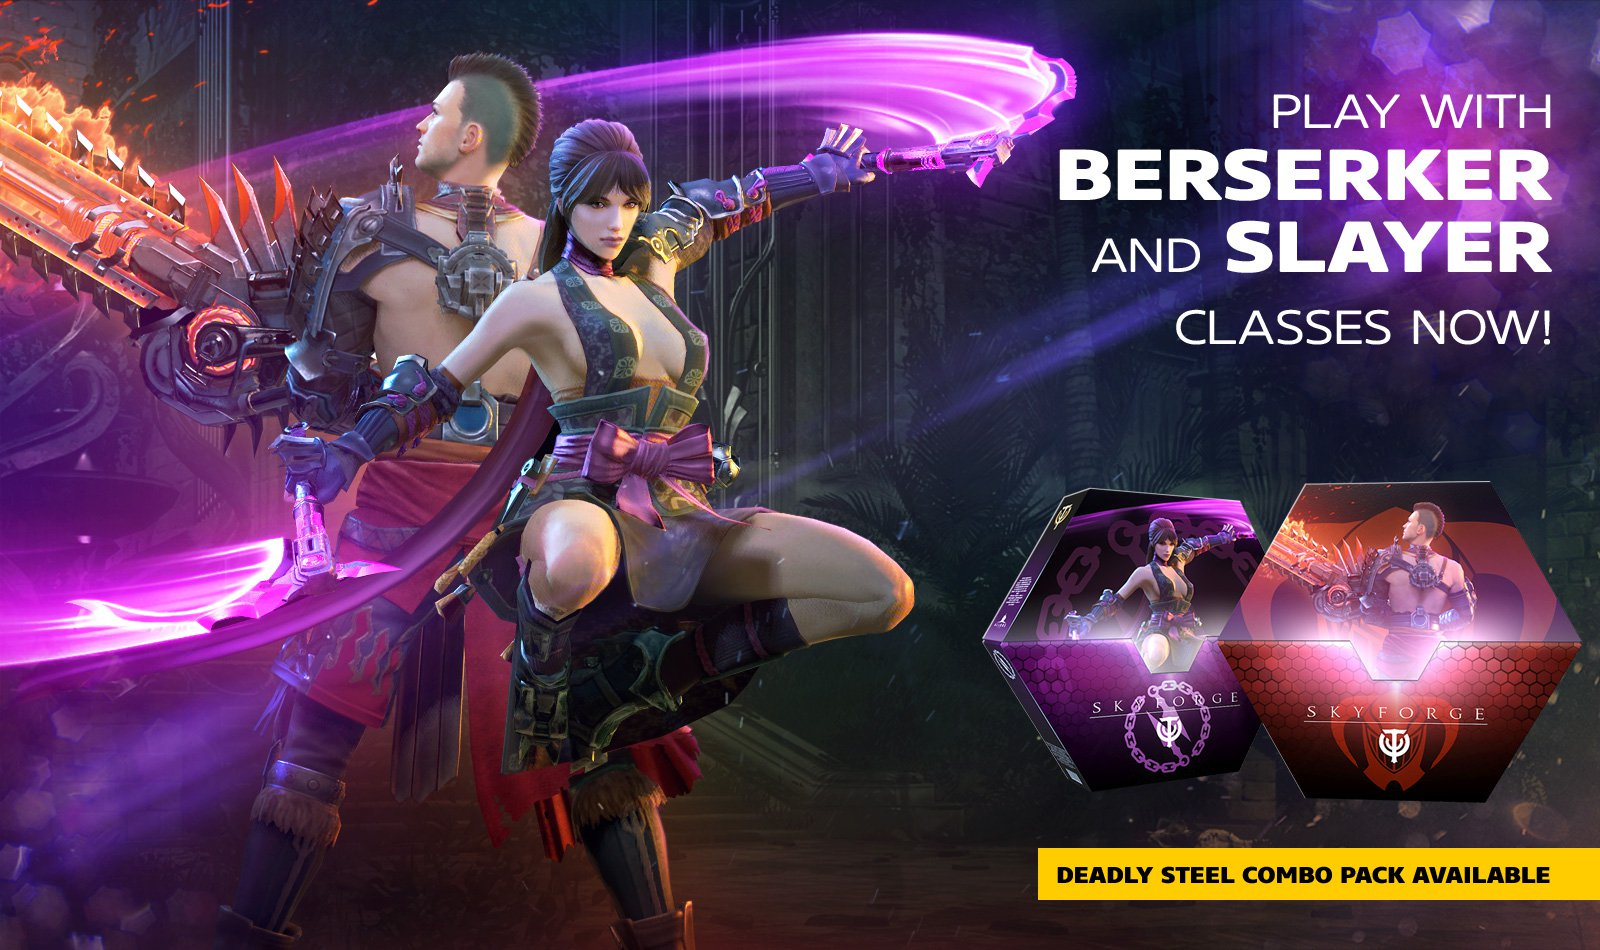 Skyforge-Berserker-and-Slayer-promo